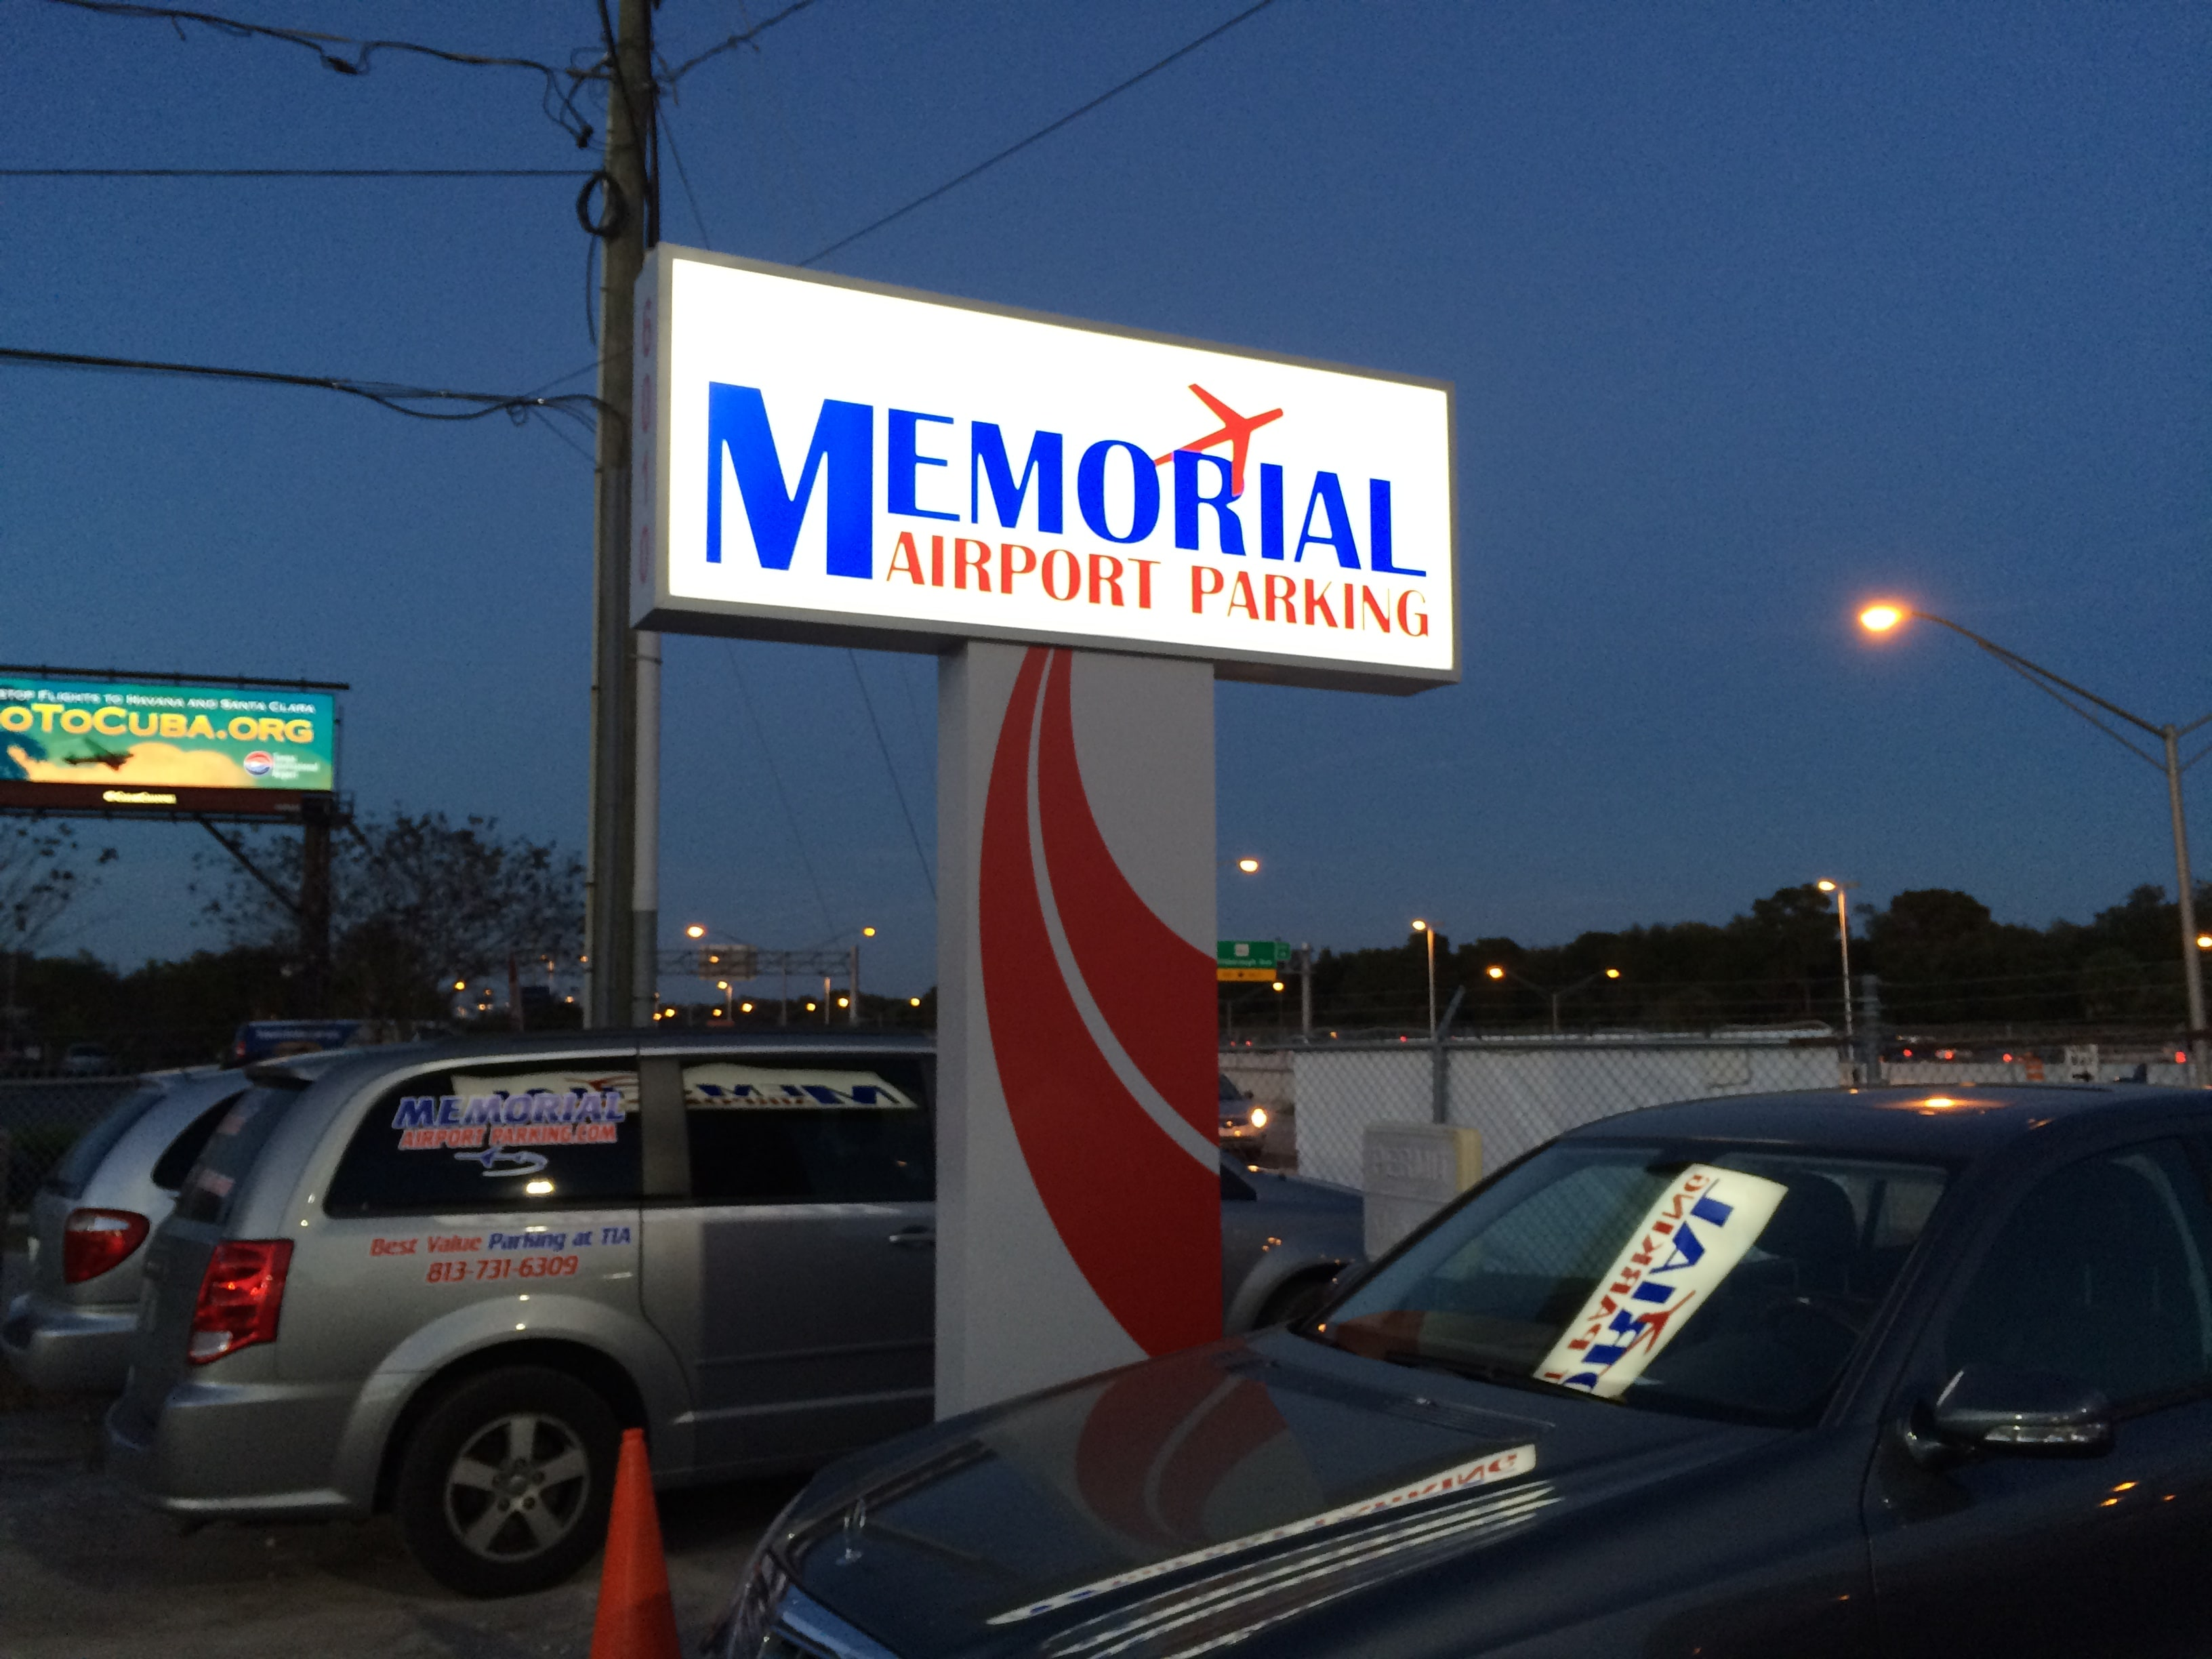 Memorial Parking Tampa Coupons - bossmixe.gq CODES Memorial Airport Parking Tampa Coupon CODES Get Deal TPA Tampa Airport Parking Coupons & Promo Codes CODES Get Deal When you are looking for parking, the last thing you want to be worried about is the price.